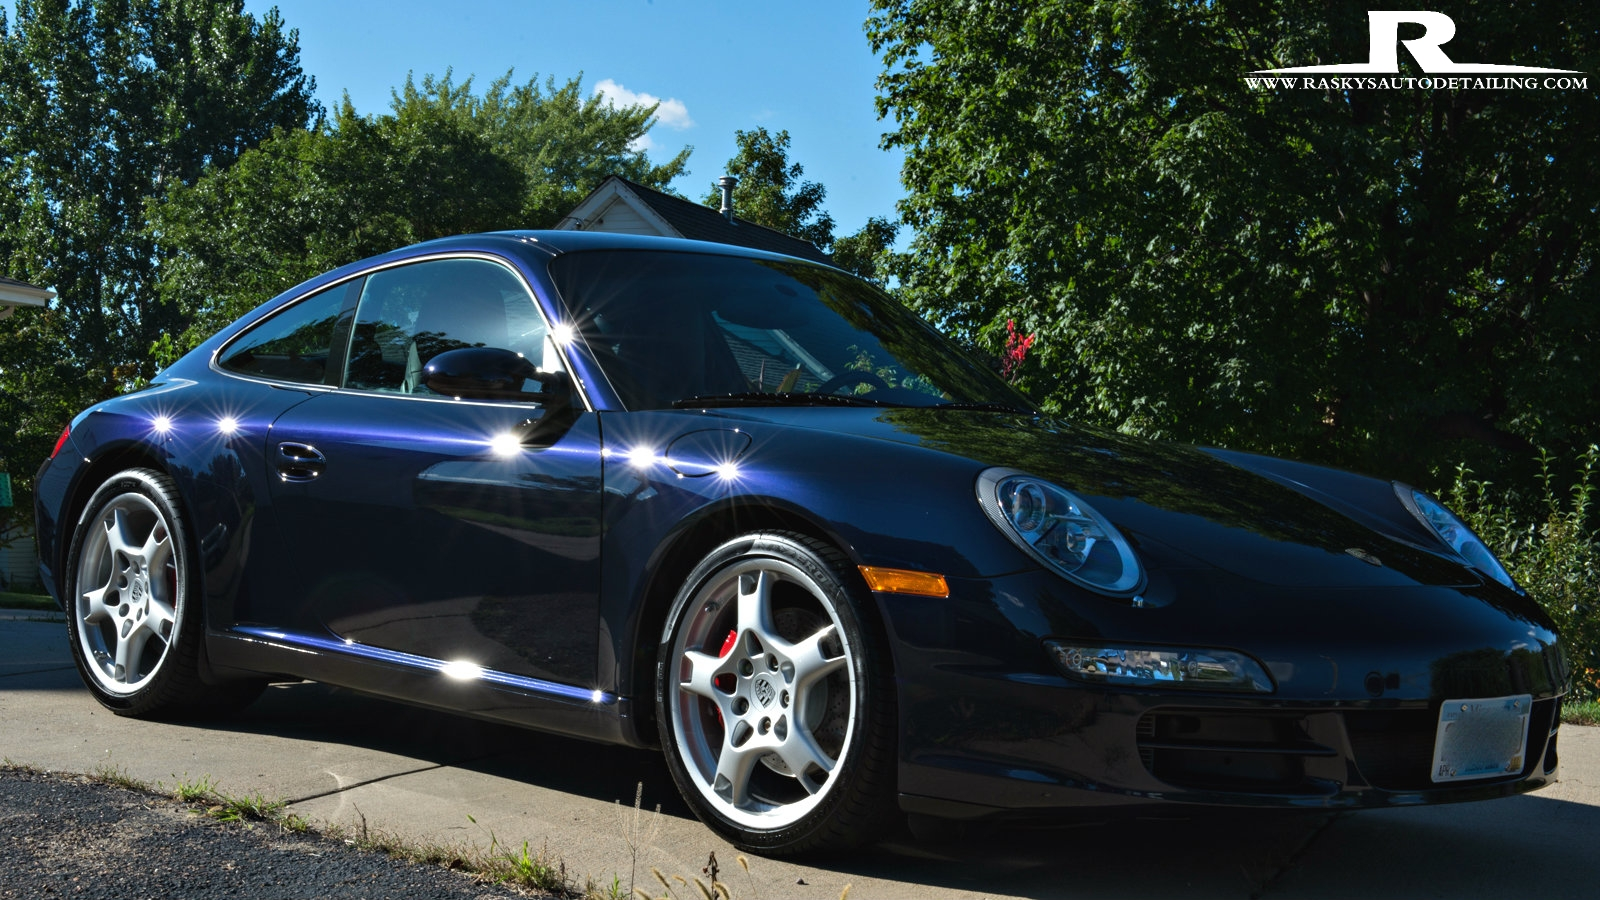 This Stunning 911 glows after Raskys Auto Detailing Minneapolis performed a full paint correction